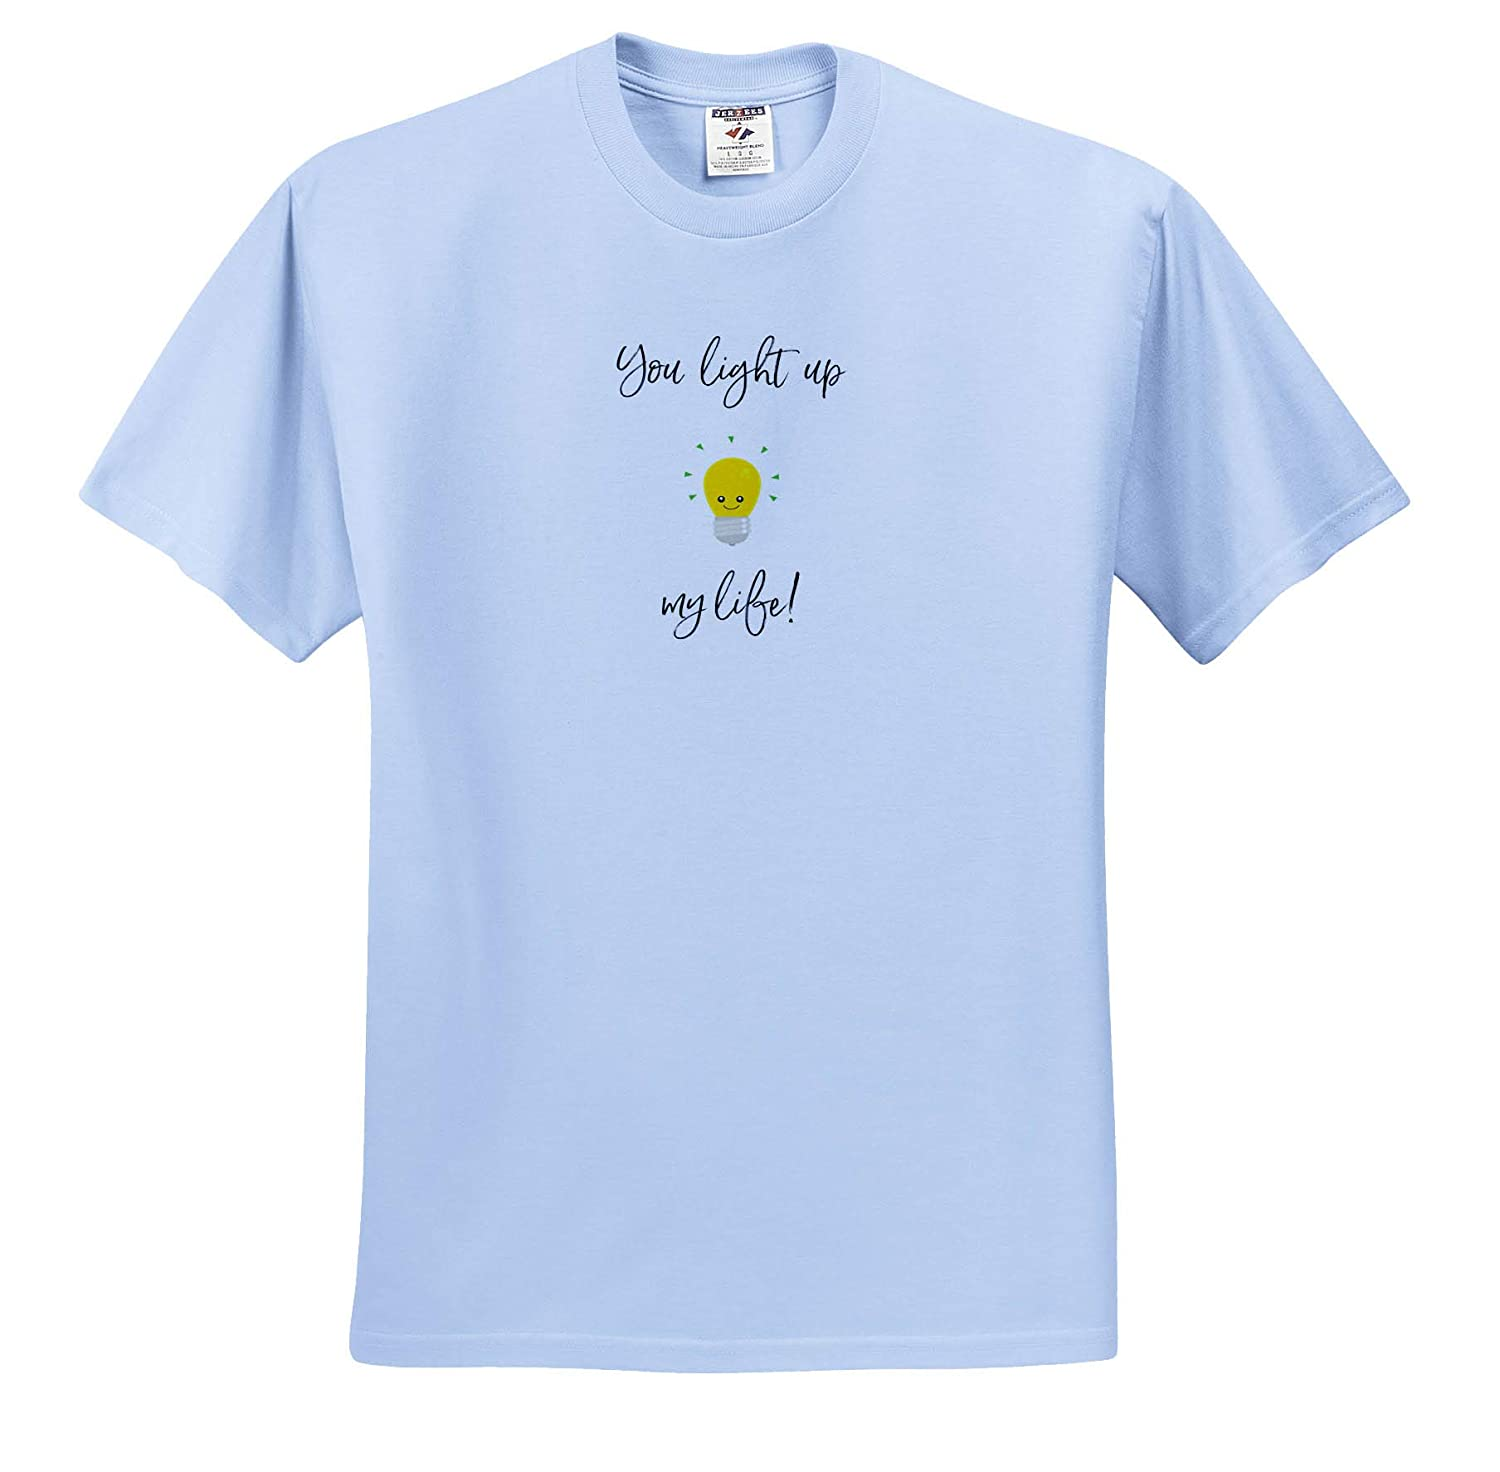 Adult T-Shirt XL 3dRose Nicole R ts/_309374 - Quote Image of You Light Up My Life